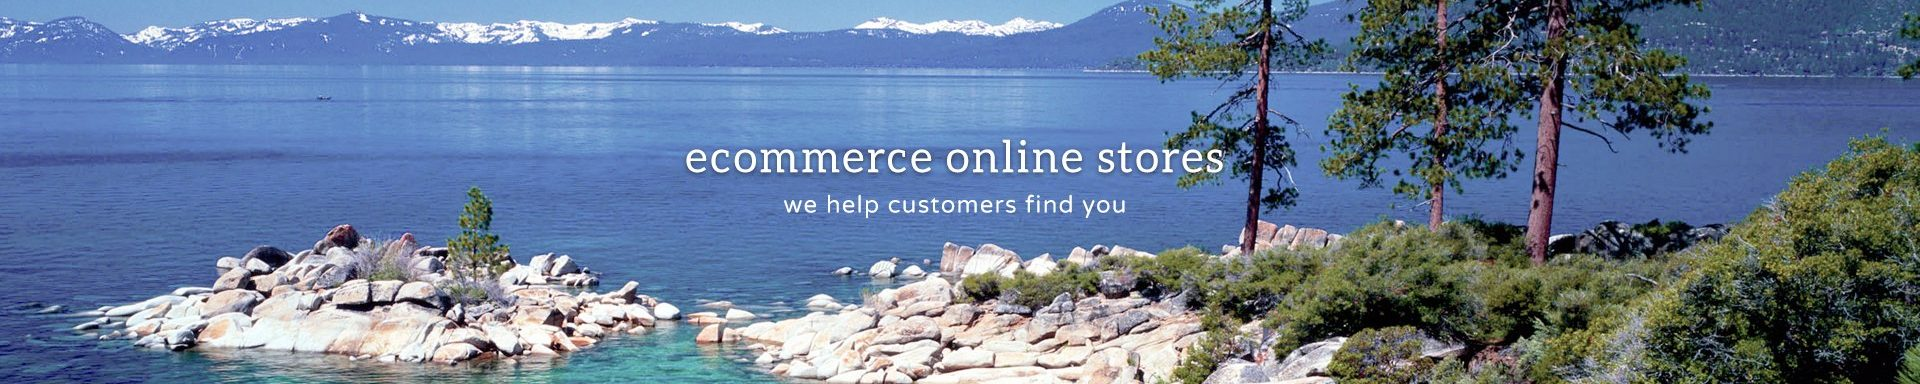 ecommerce at the lake